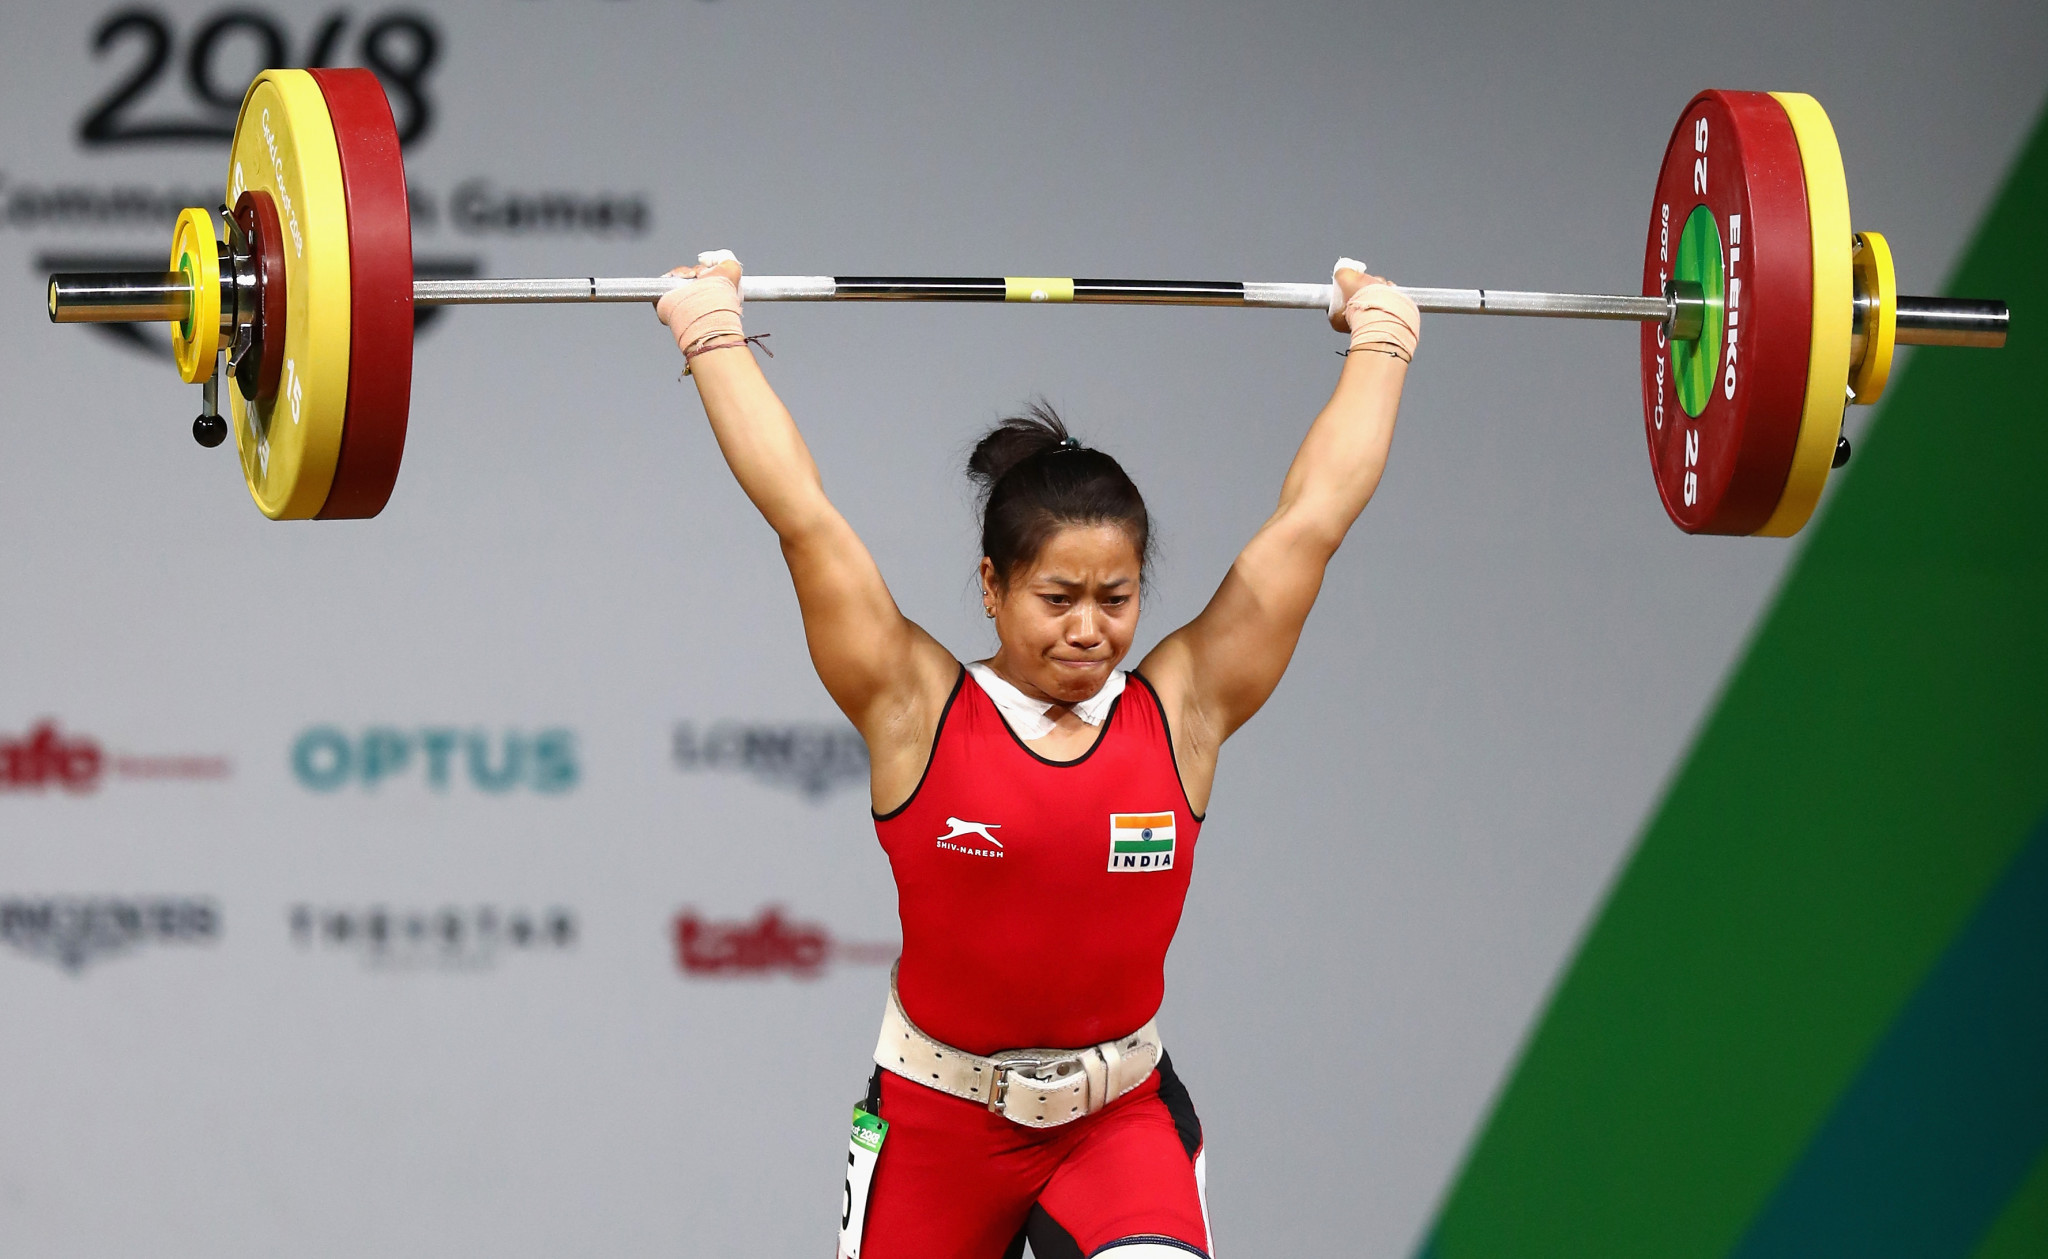 Khumukcham Sanjita Chanu tested positive for testosterone in the build-up to the 2017 IWF World Championships but has recently been cleared to return to competition because of an administrative mix-up ©Getty Images